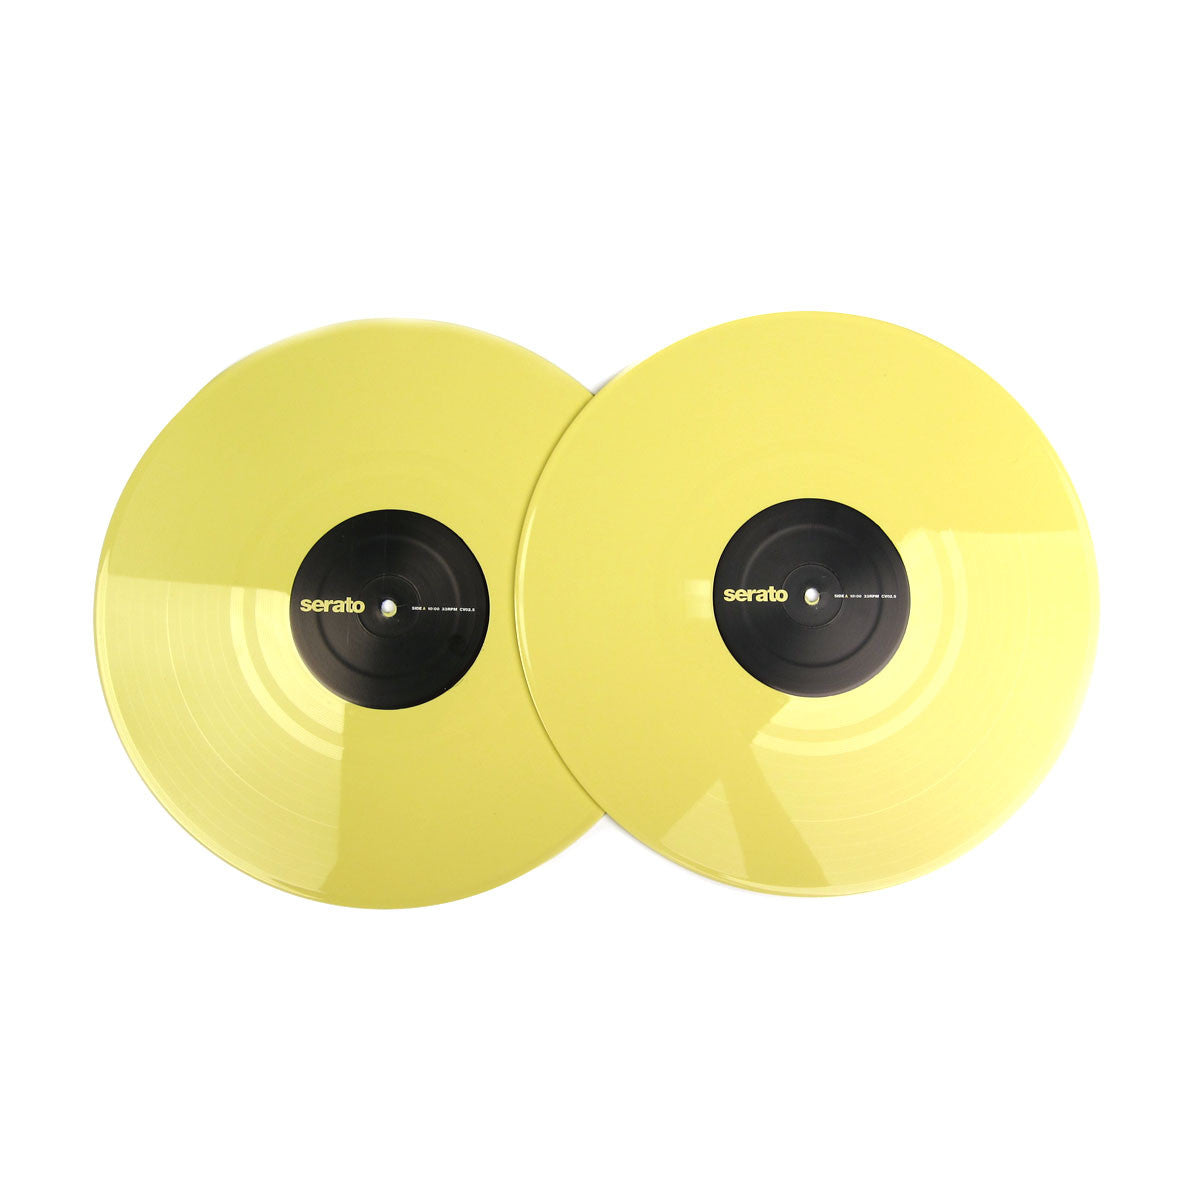 Serato: Performance Series Control Vinyl 2LP - Pastel Yellow (Pair) 2